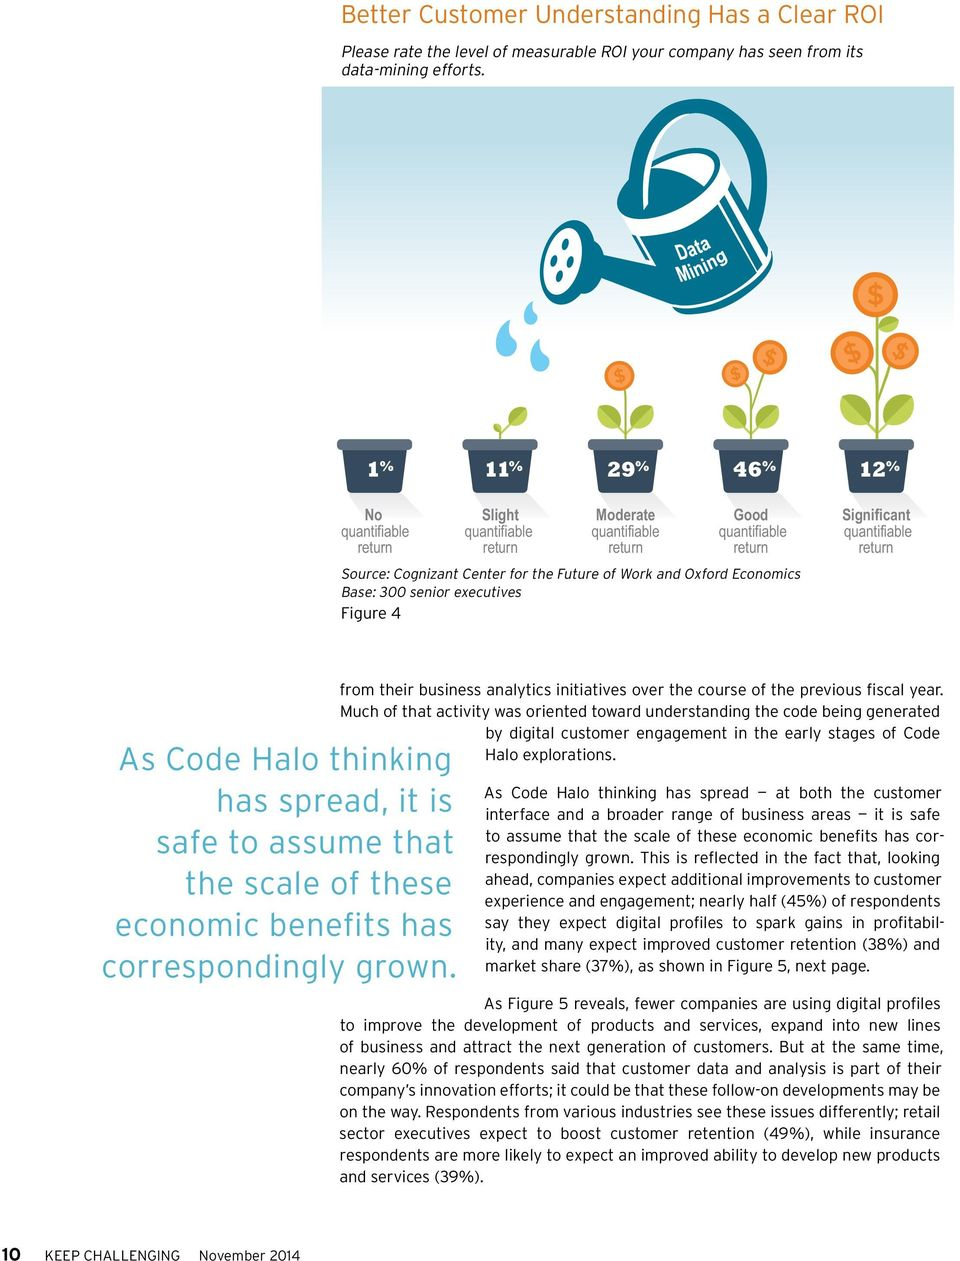 Base: 300 senior executives Figure 4 Significant quantifiable return As Code Halo thinking has spread, it is safe to assume that the scale of these economic benefits has correspondingly grown.